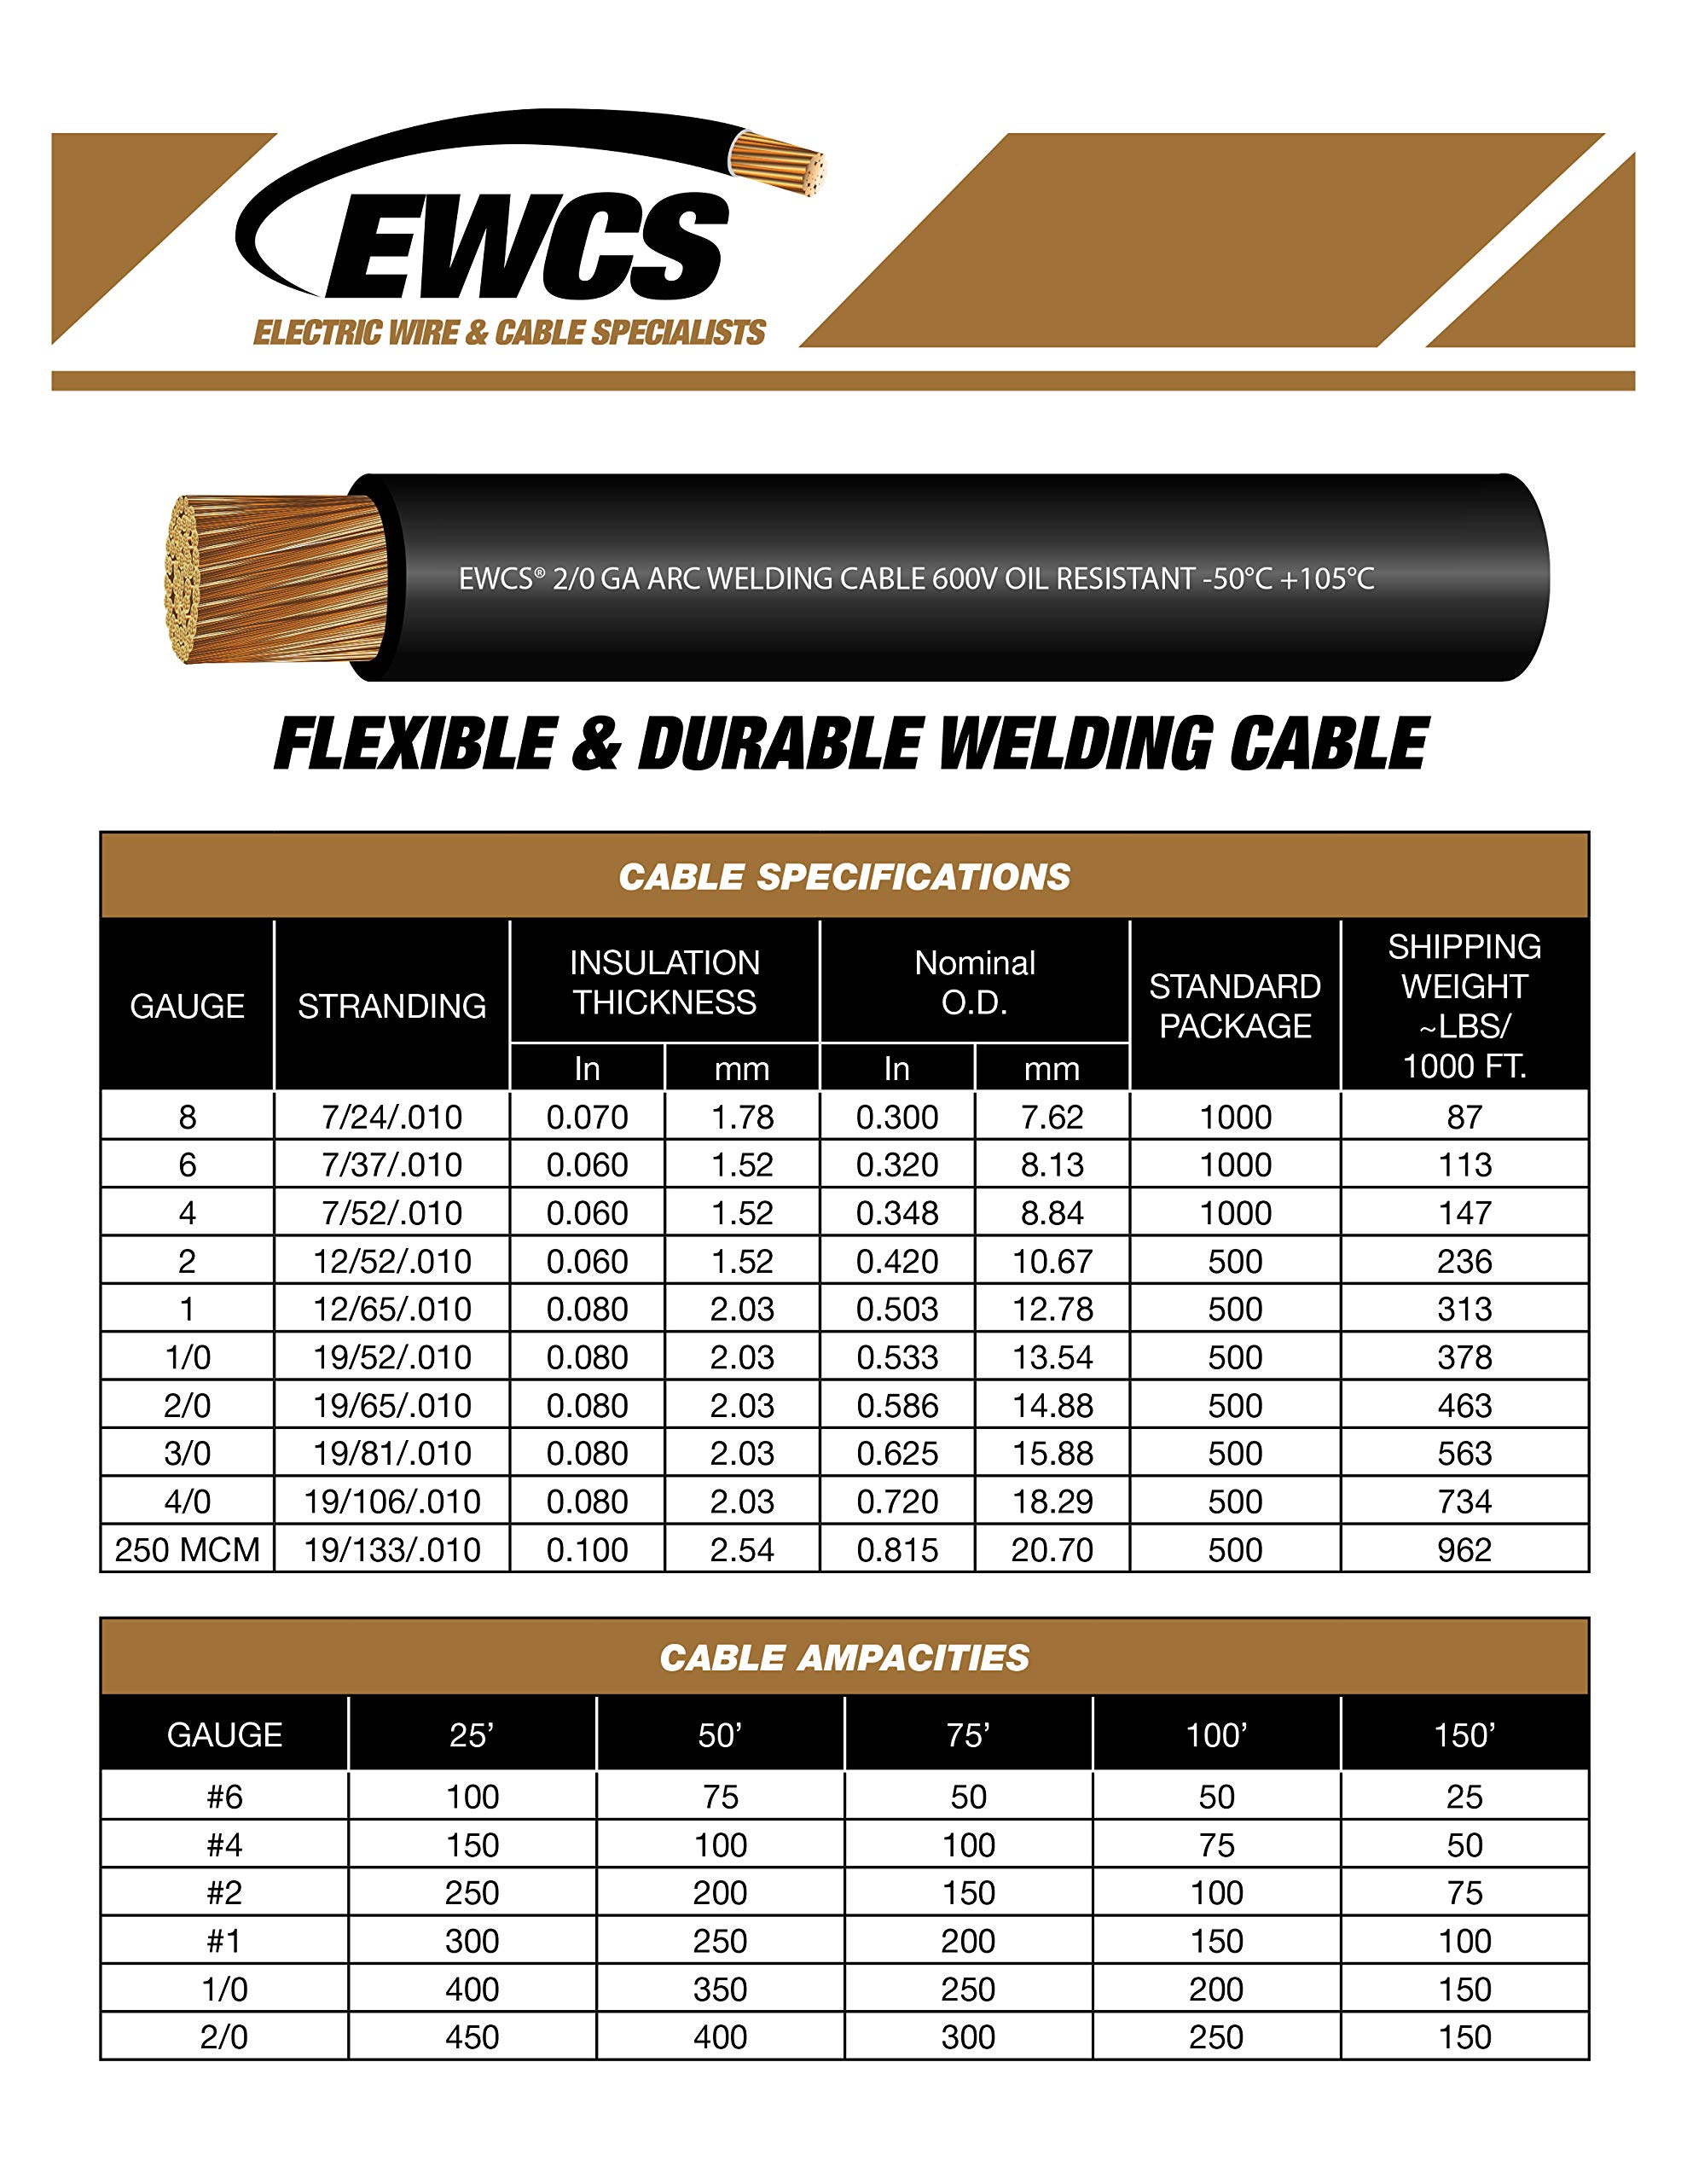 2 Gauge Premium Extra Flexible Welding Cable 600 VOLT - RED - 25 FEET - EWCS Spec - Made in the USA! by EWCS (Image #2)